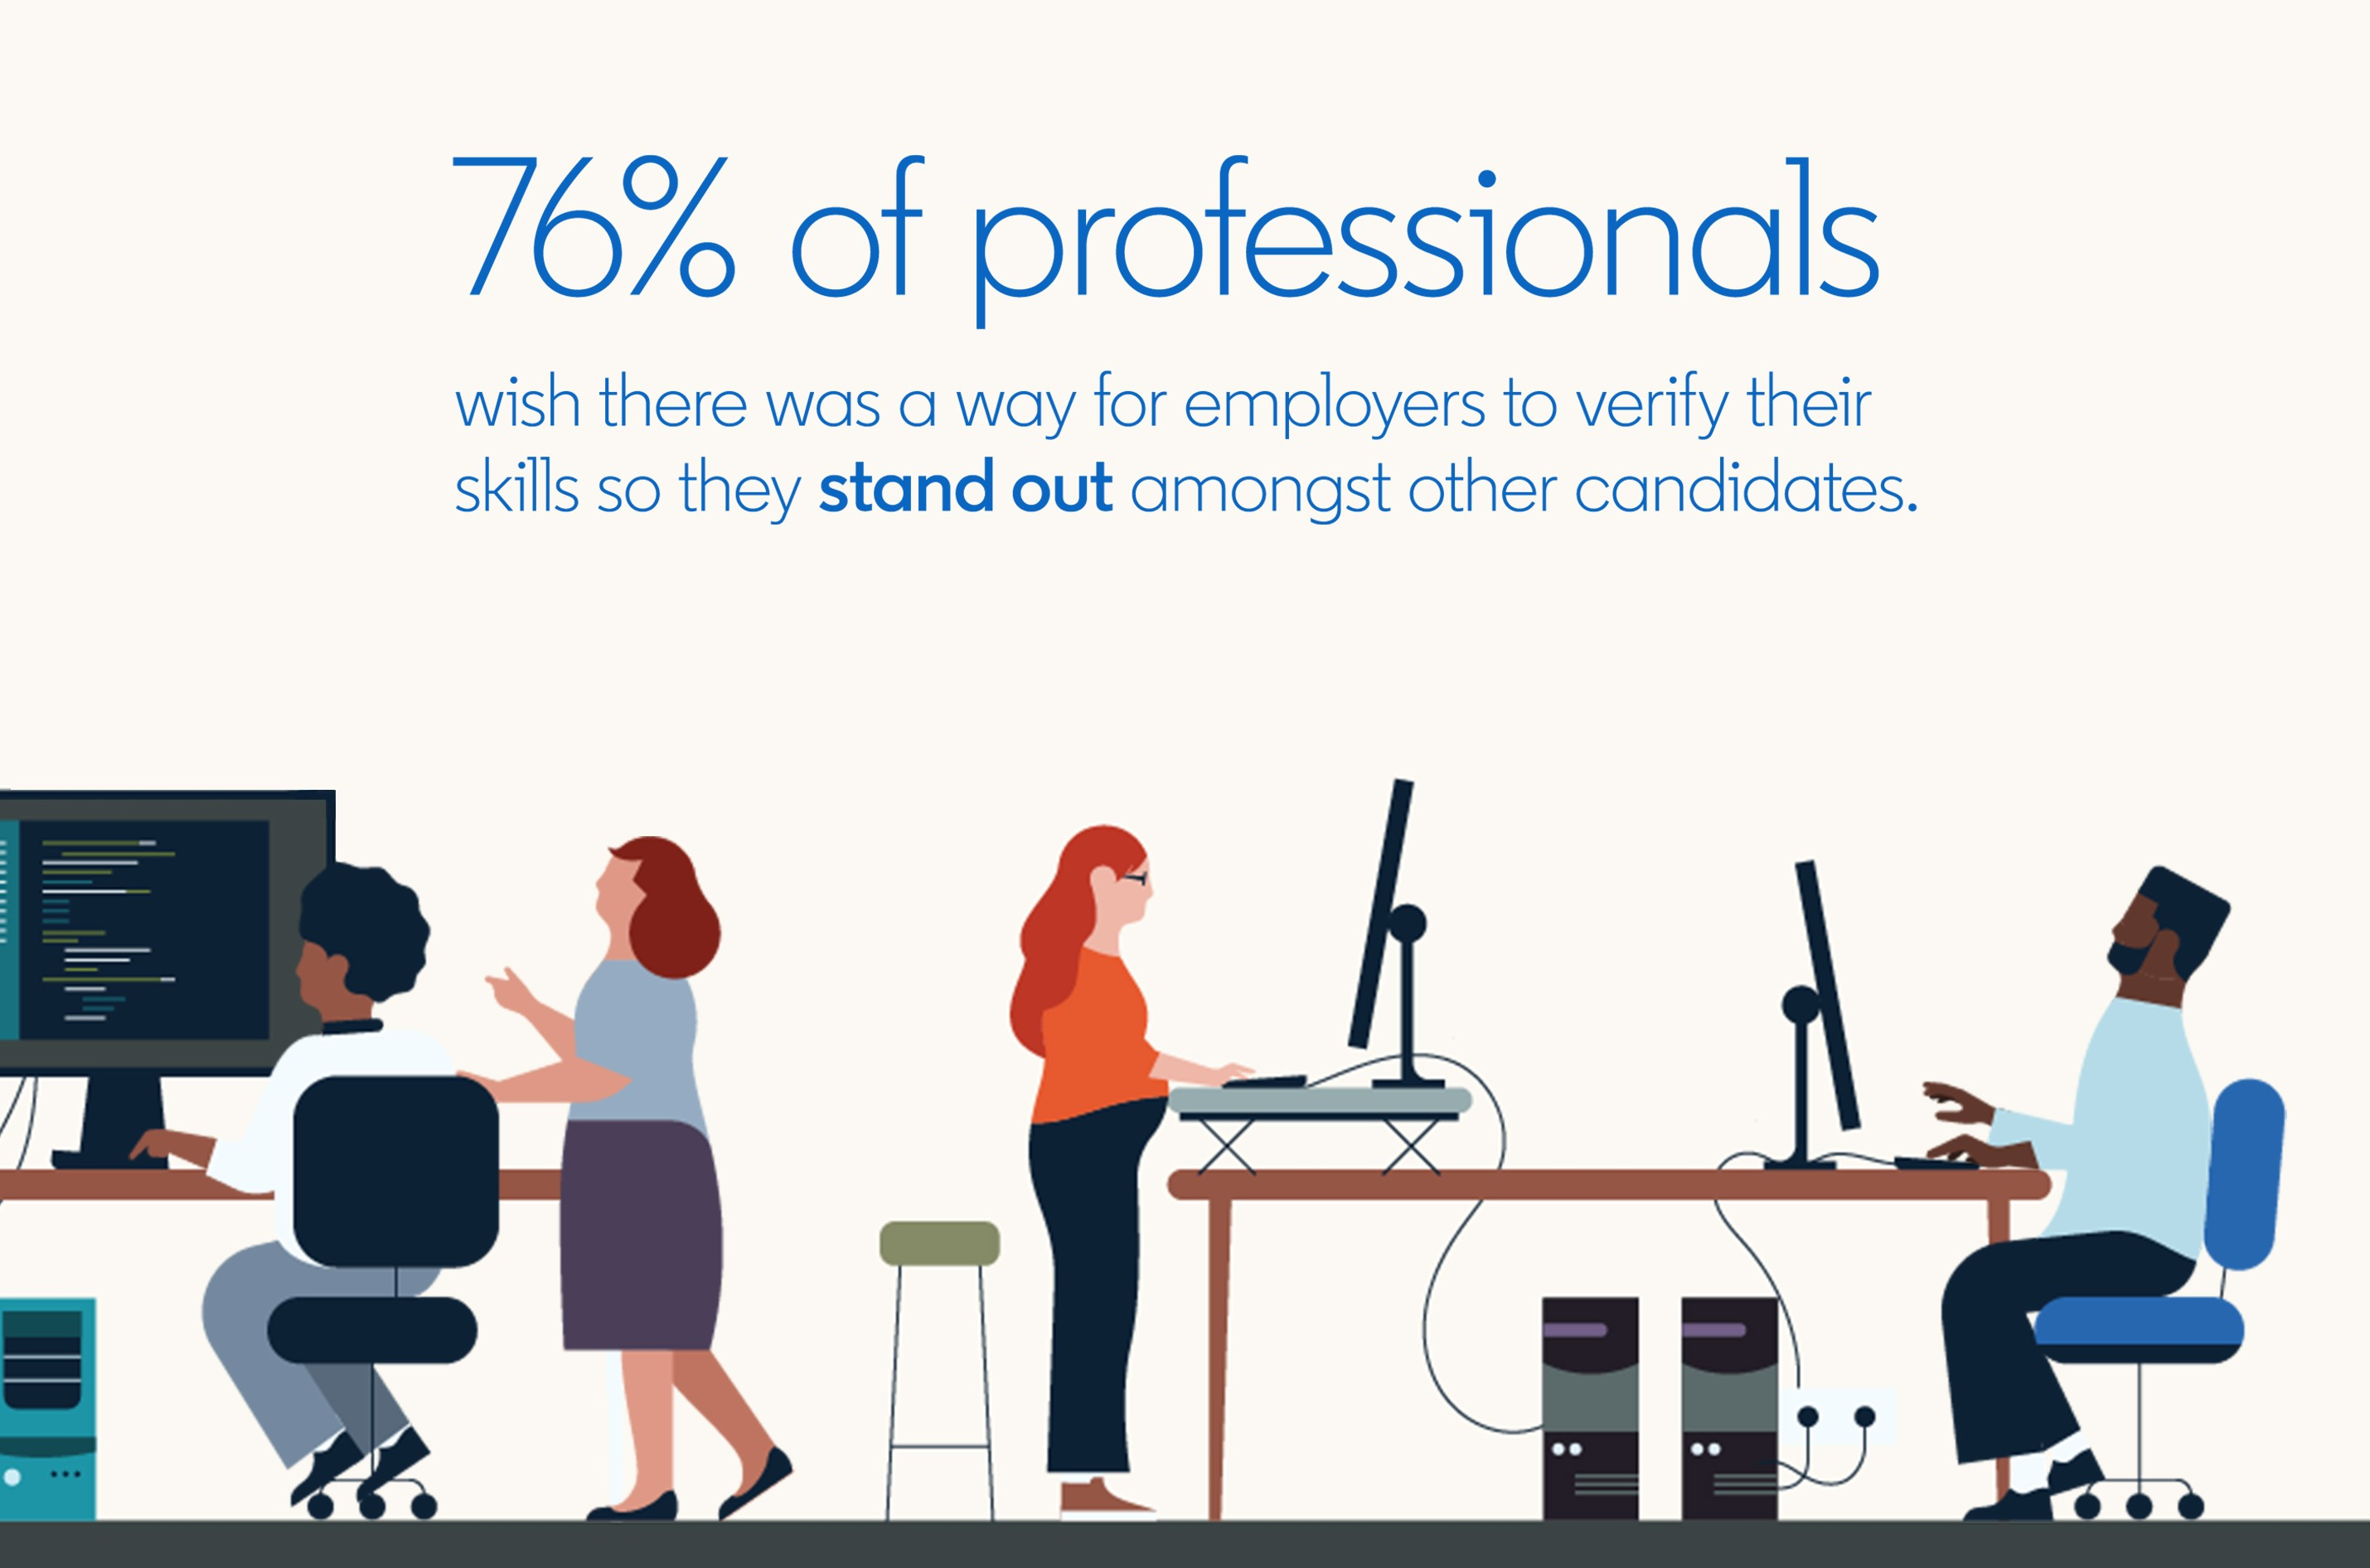 76 percent of workers wish they could validate their skills